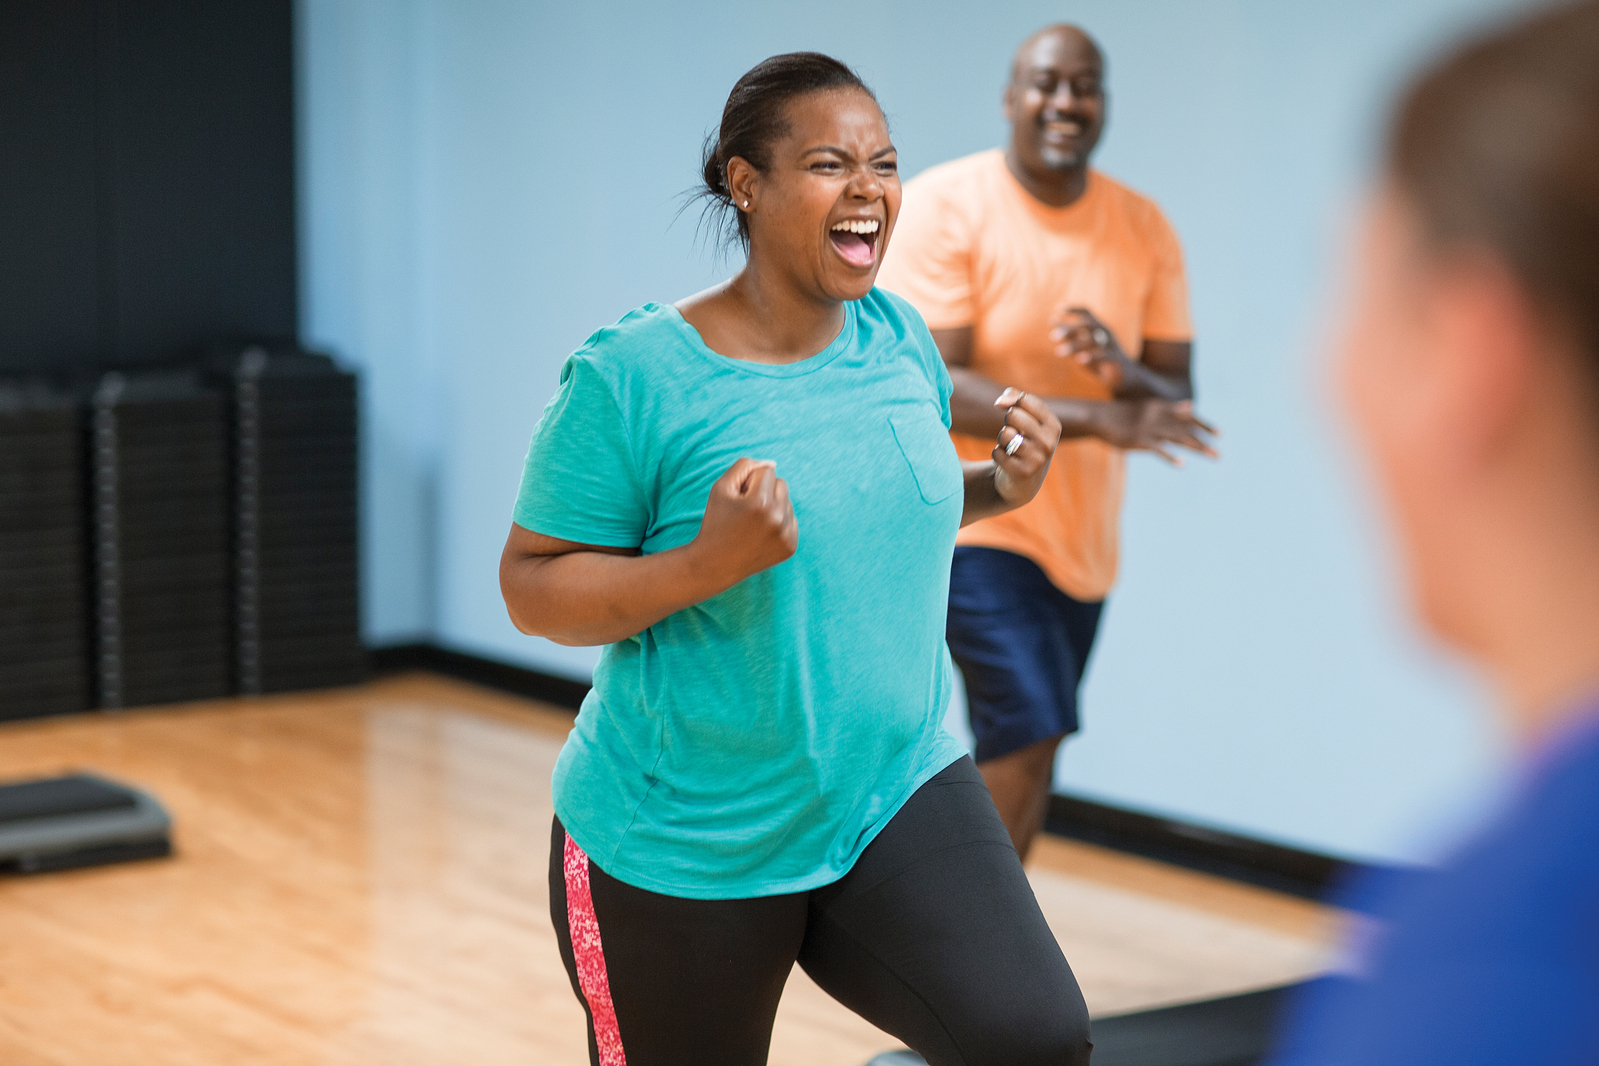 Exciting woman in fitness class